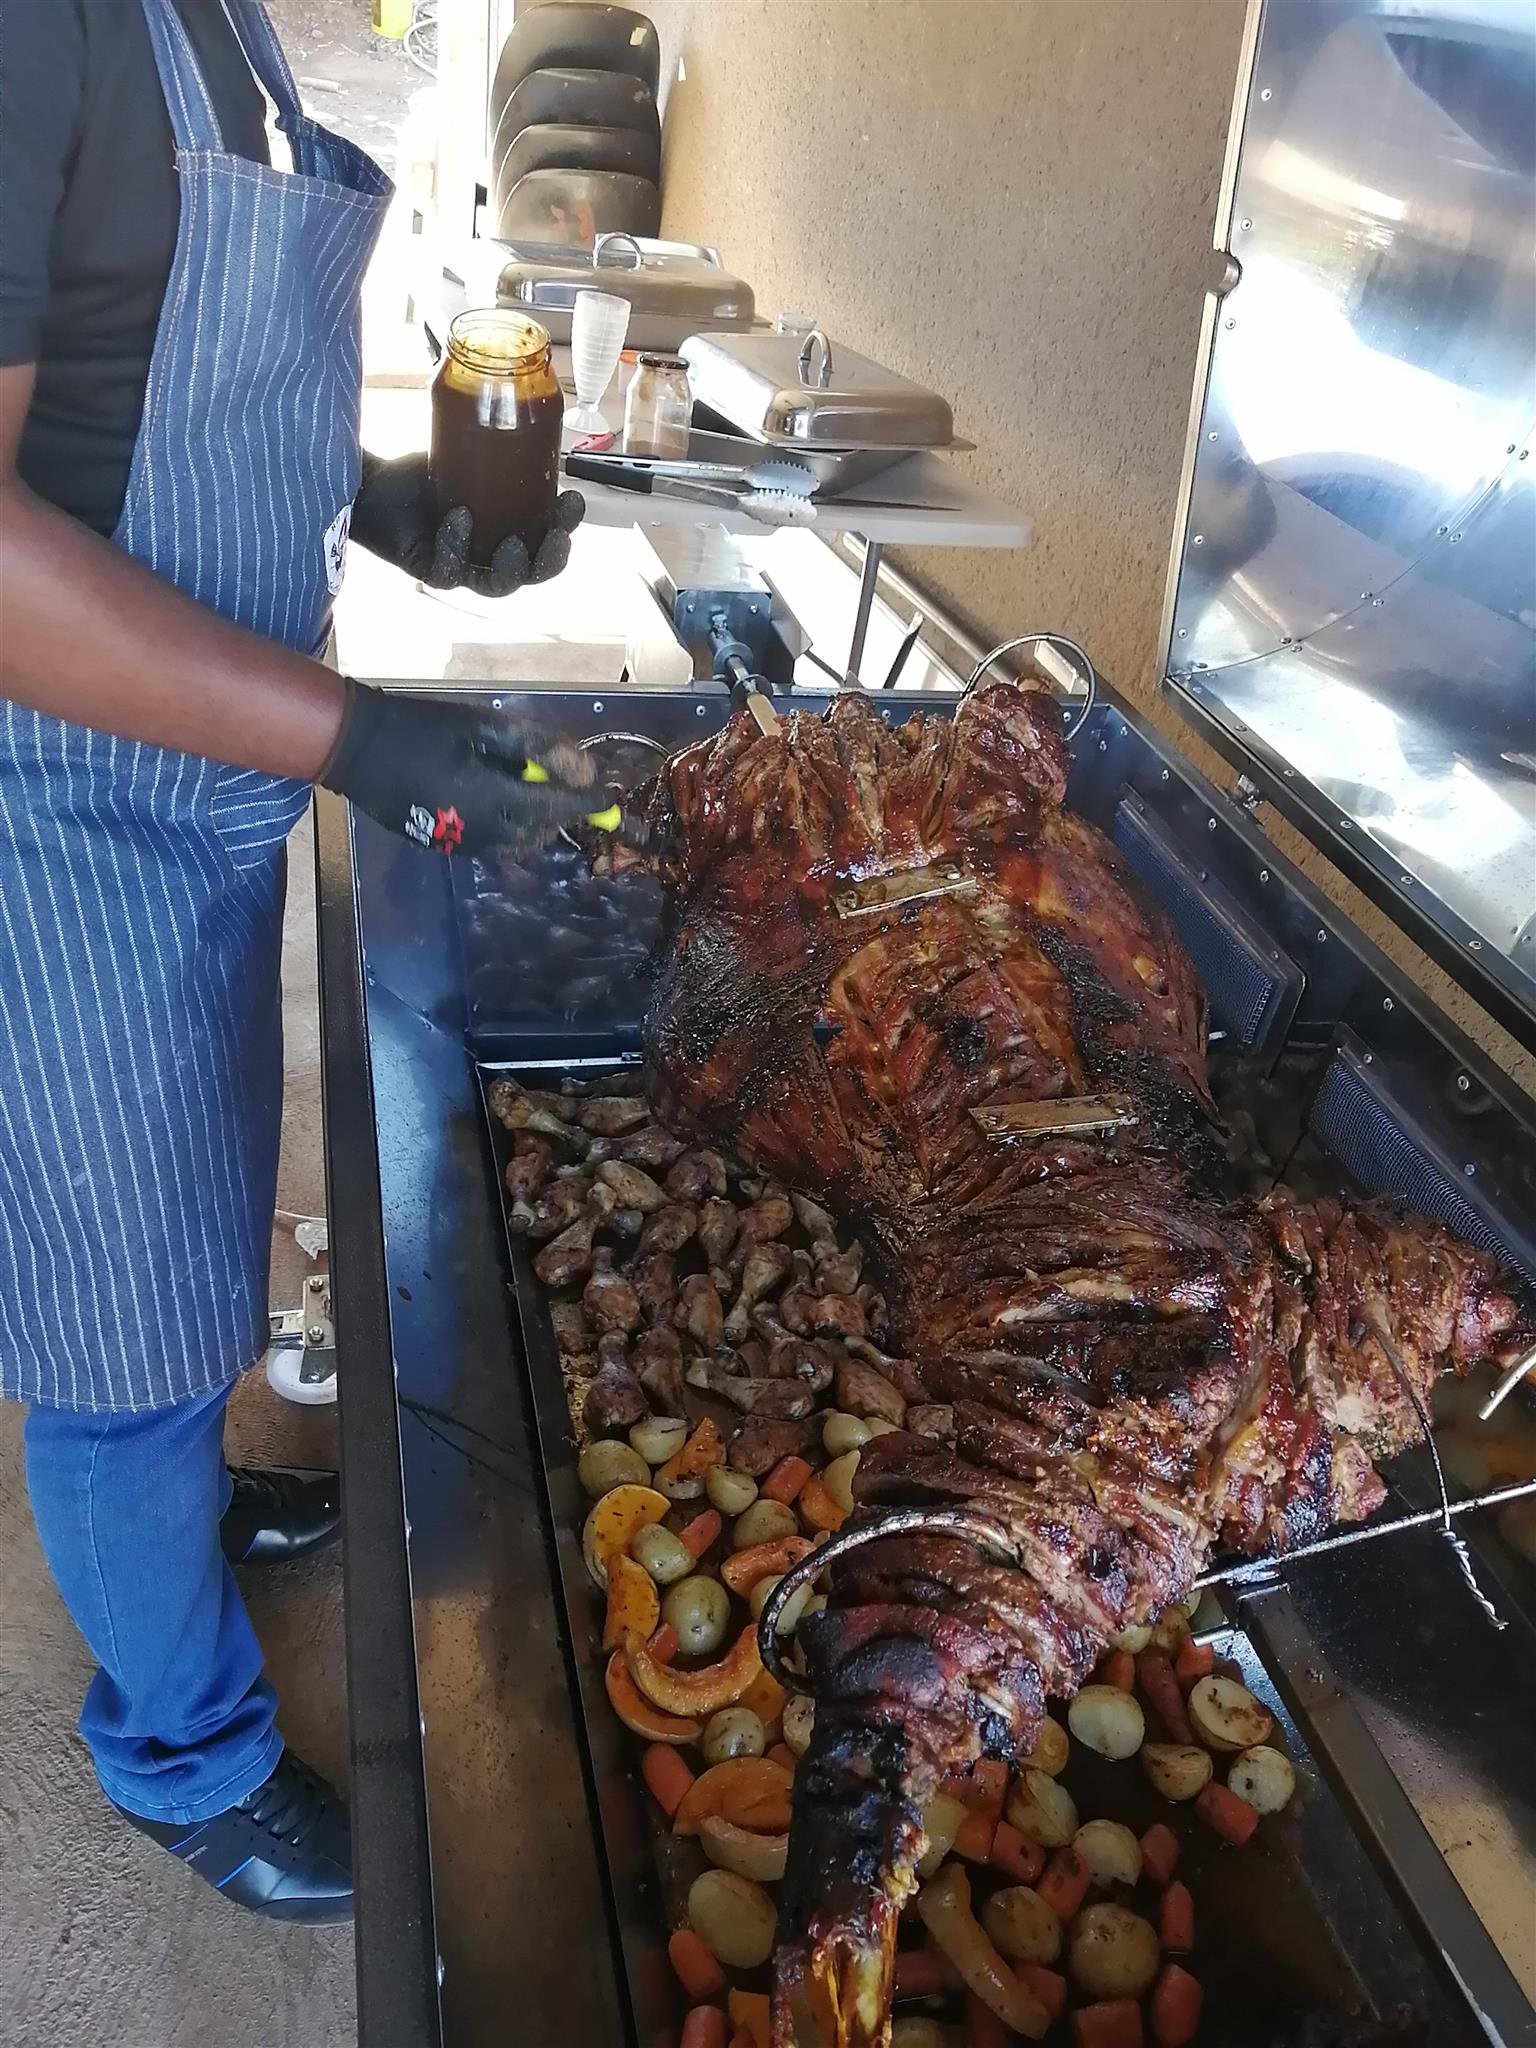 Ko Moraleng Spit Braai and Catering services